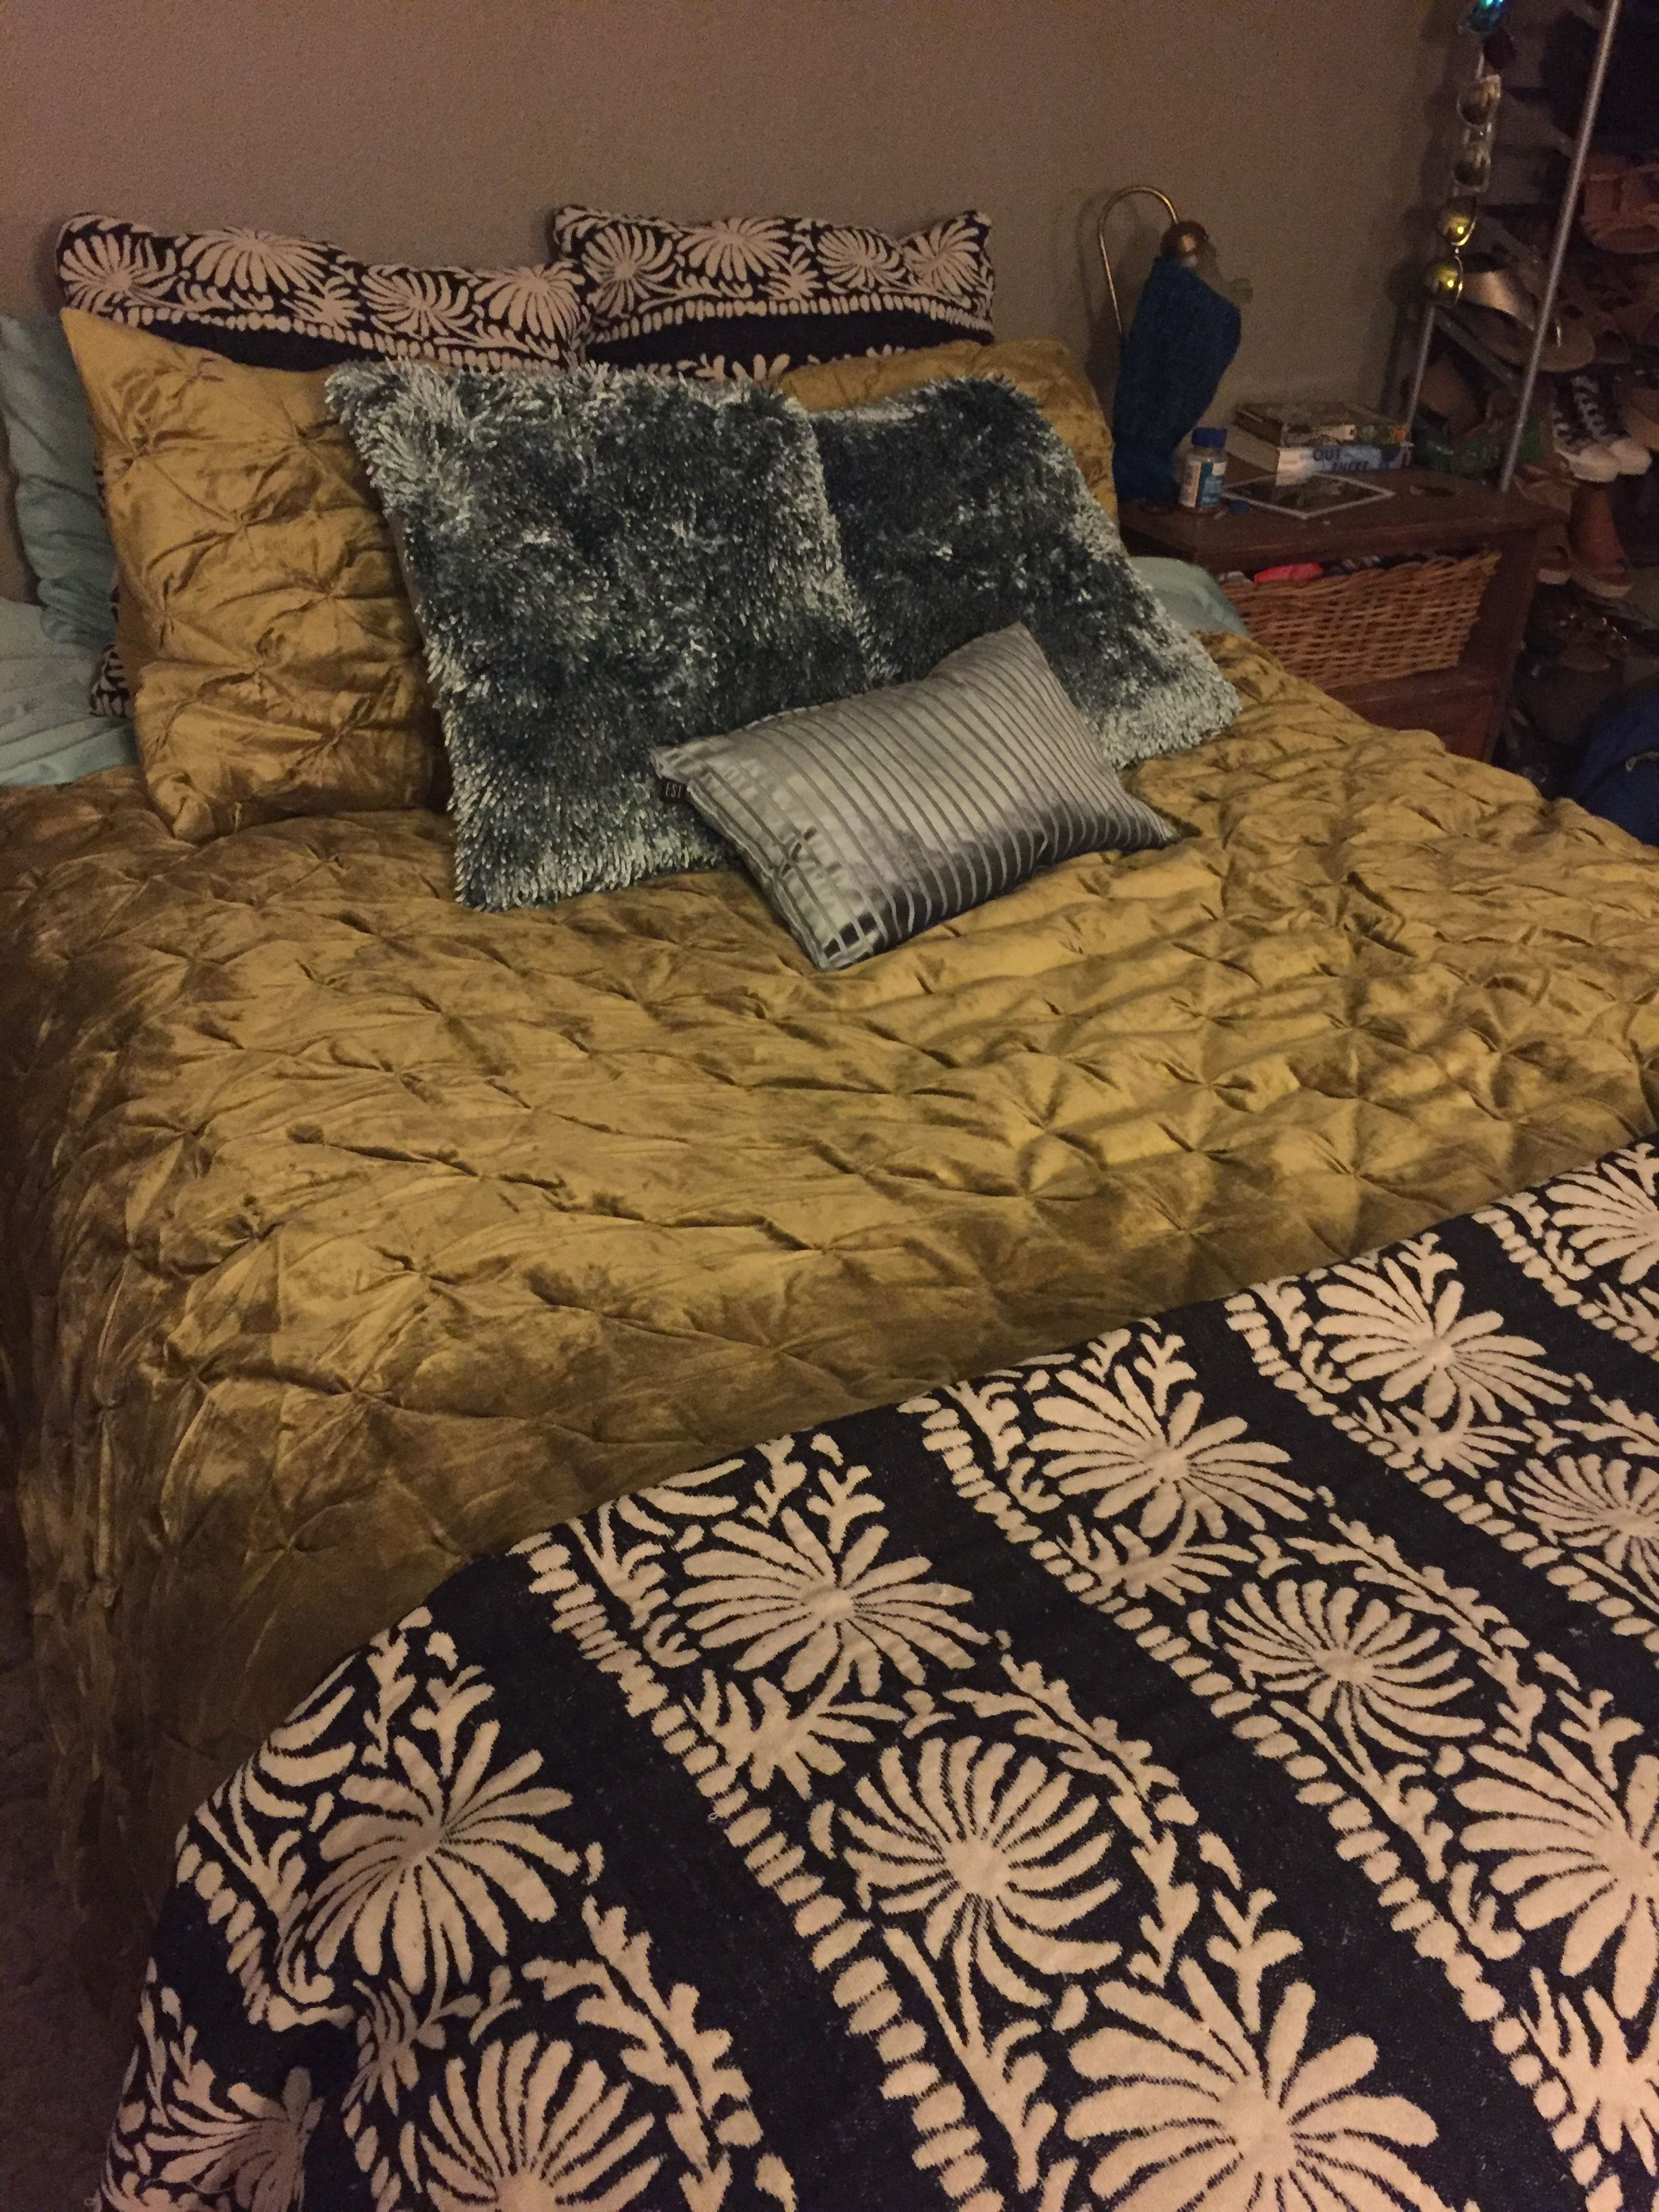 Velvet Bedding Quilt And Shams From World Market Throw And